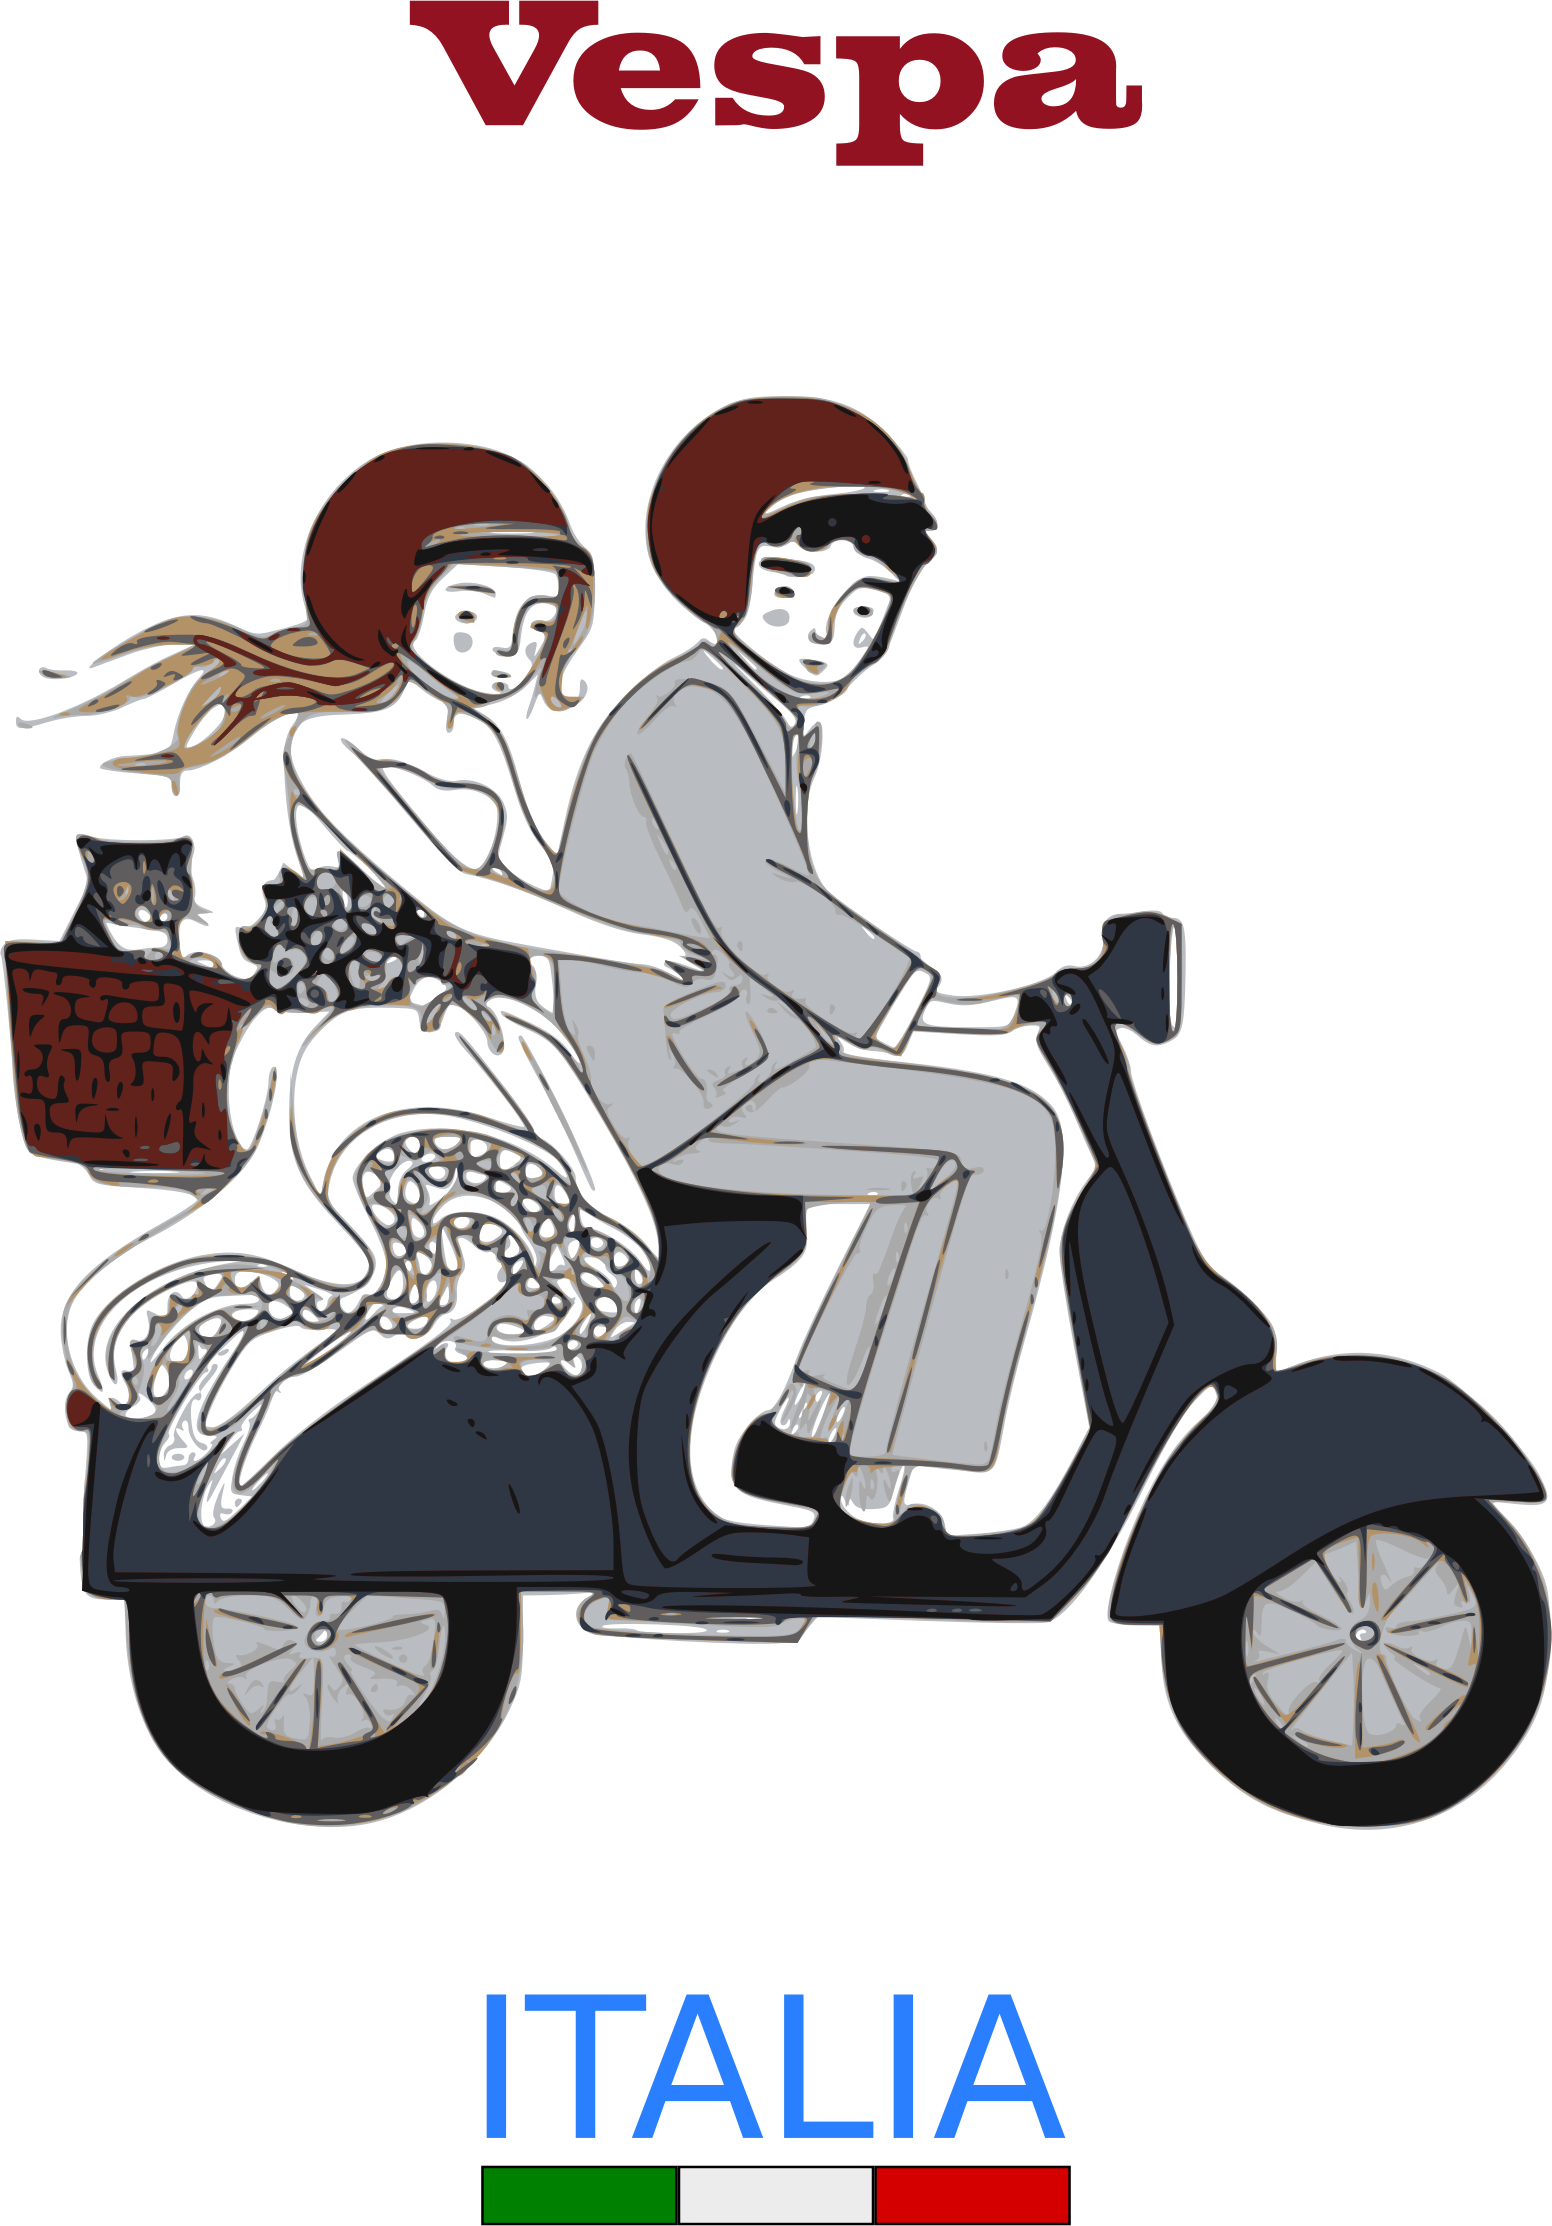 Vespa big image png. Scooter clipart retro scooter